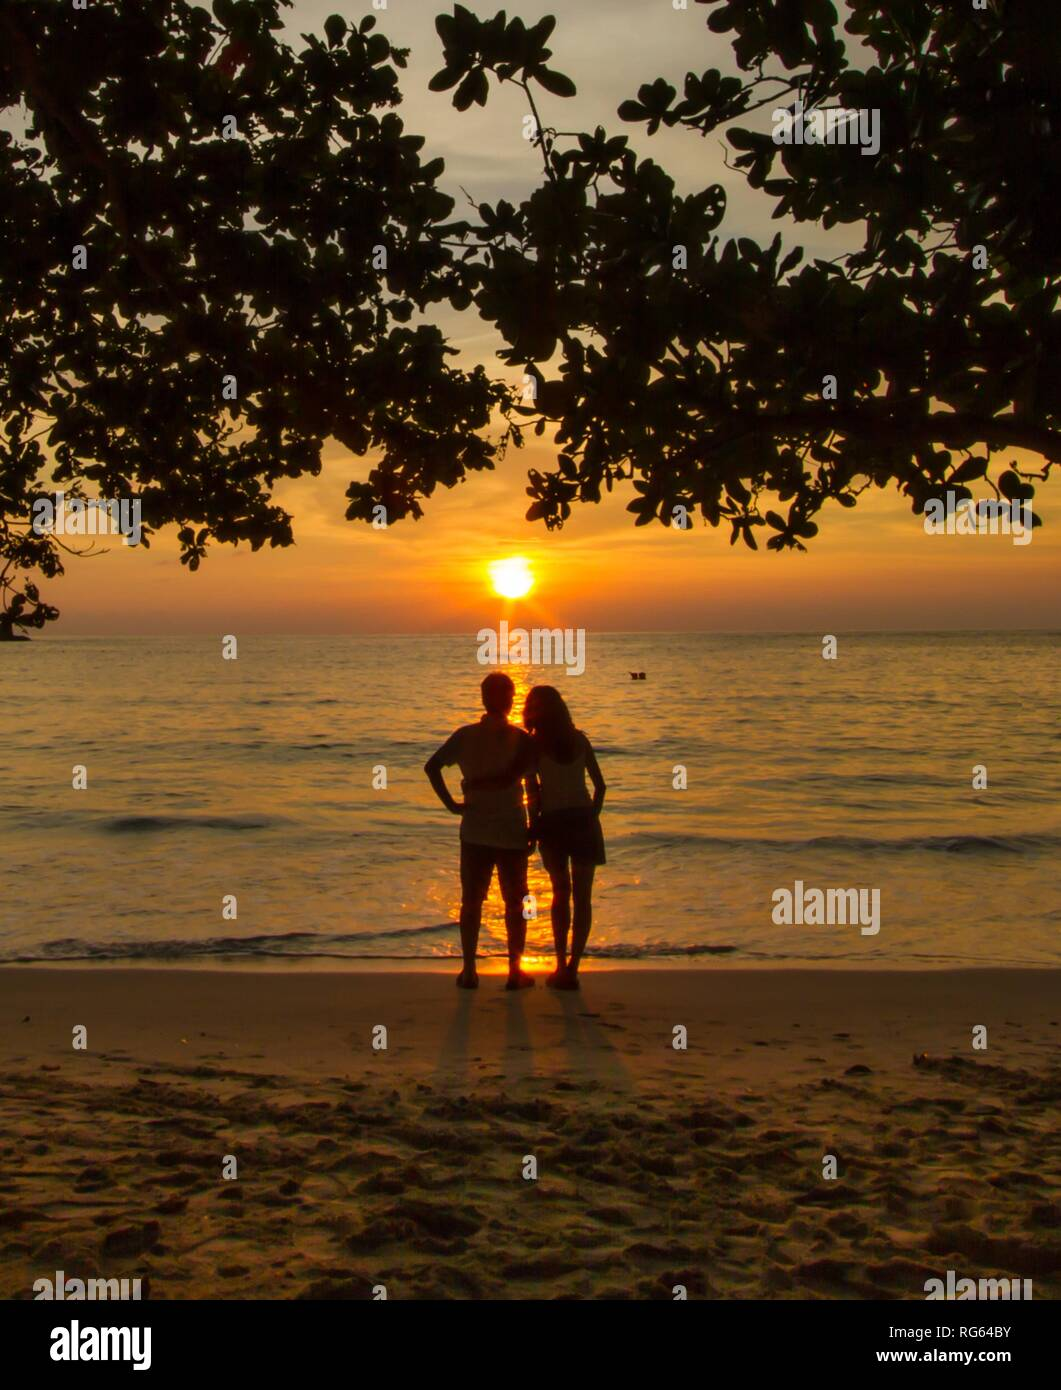 A couple on a romantic getaway - Stock Image